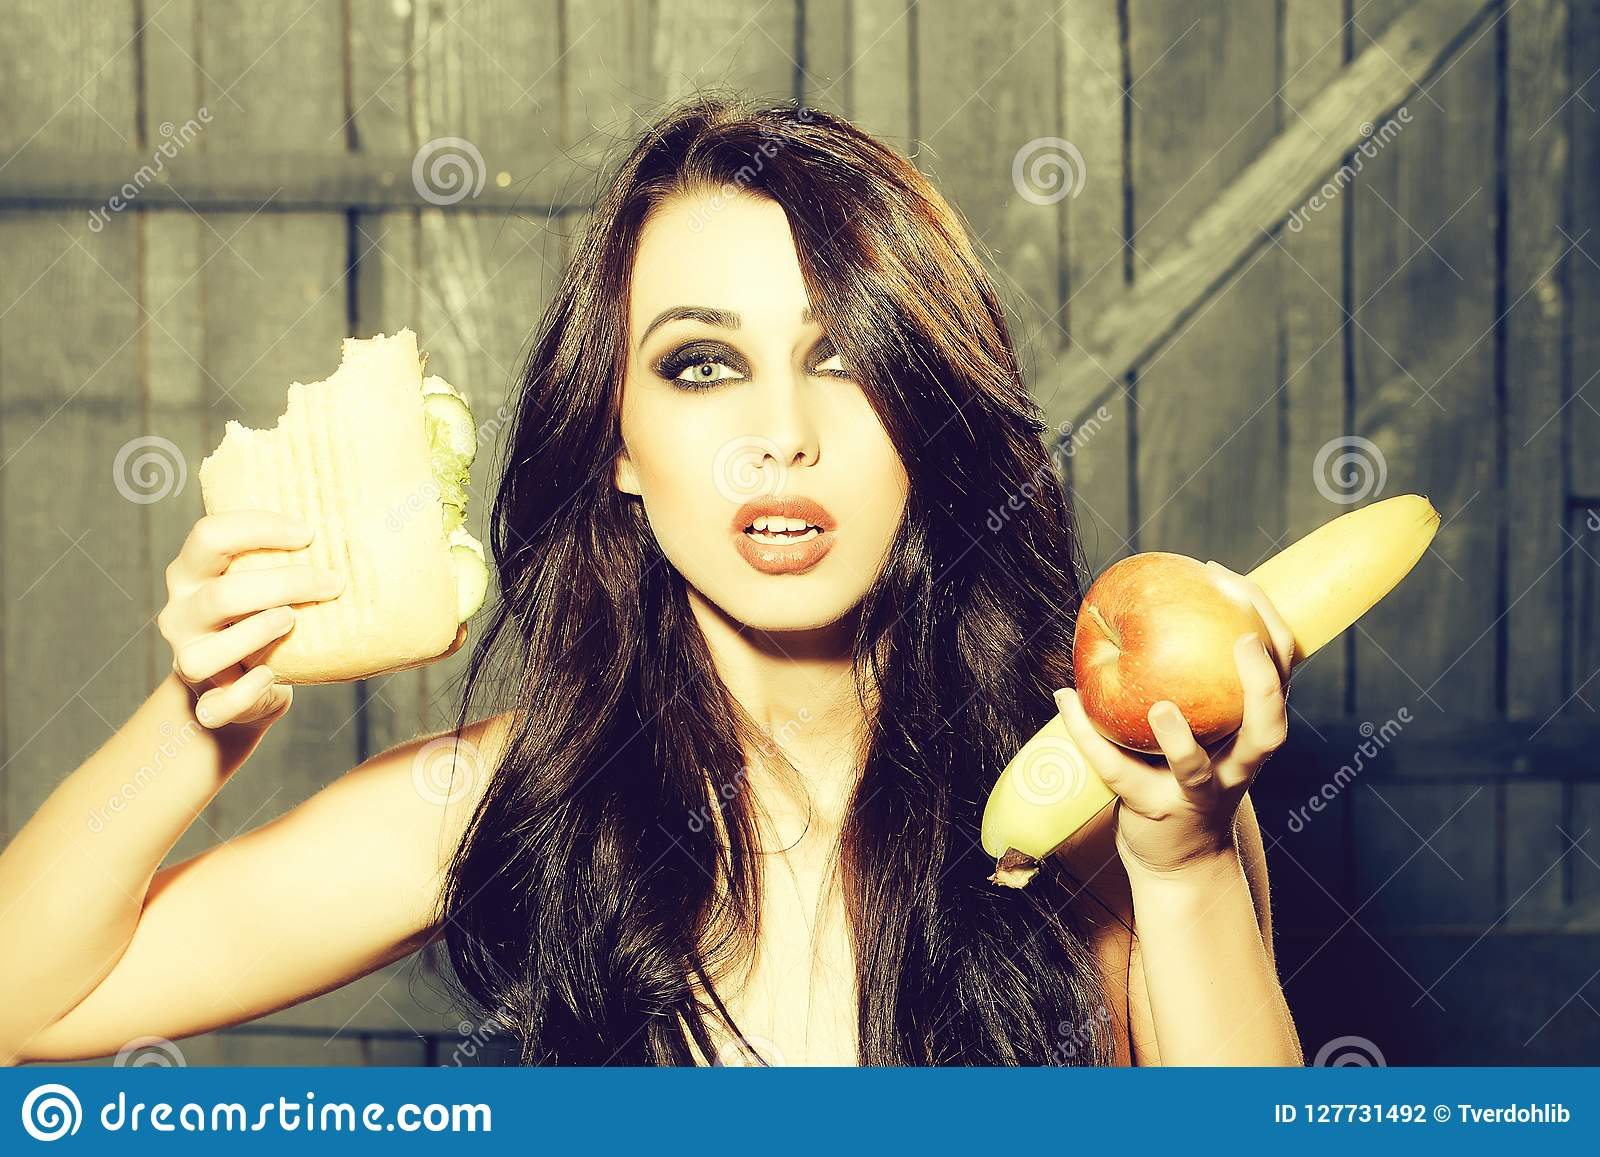 Girl and food stock photo. Image of healthy, beauty - 127731492